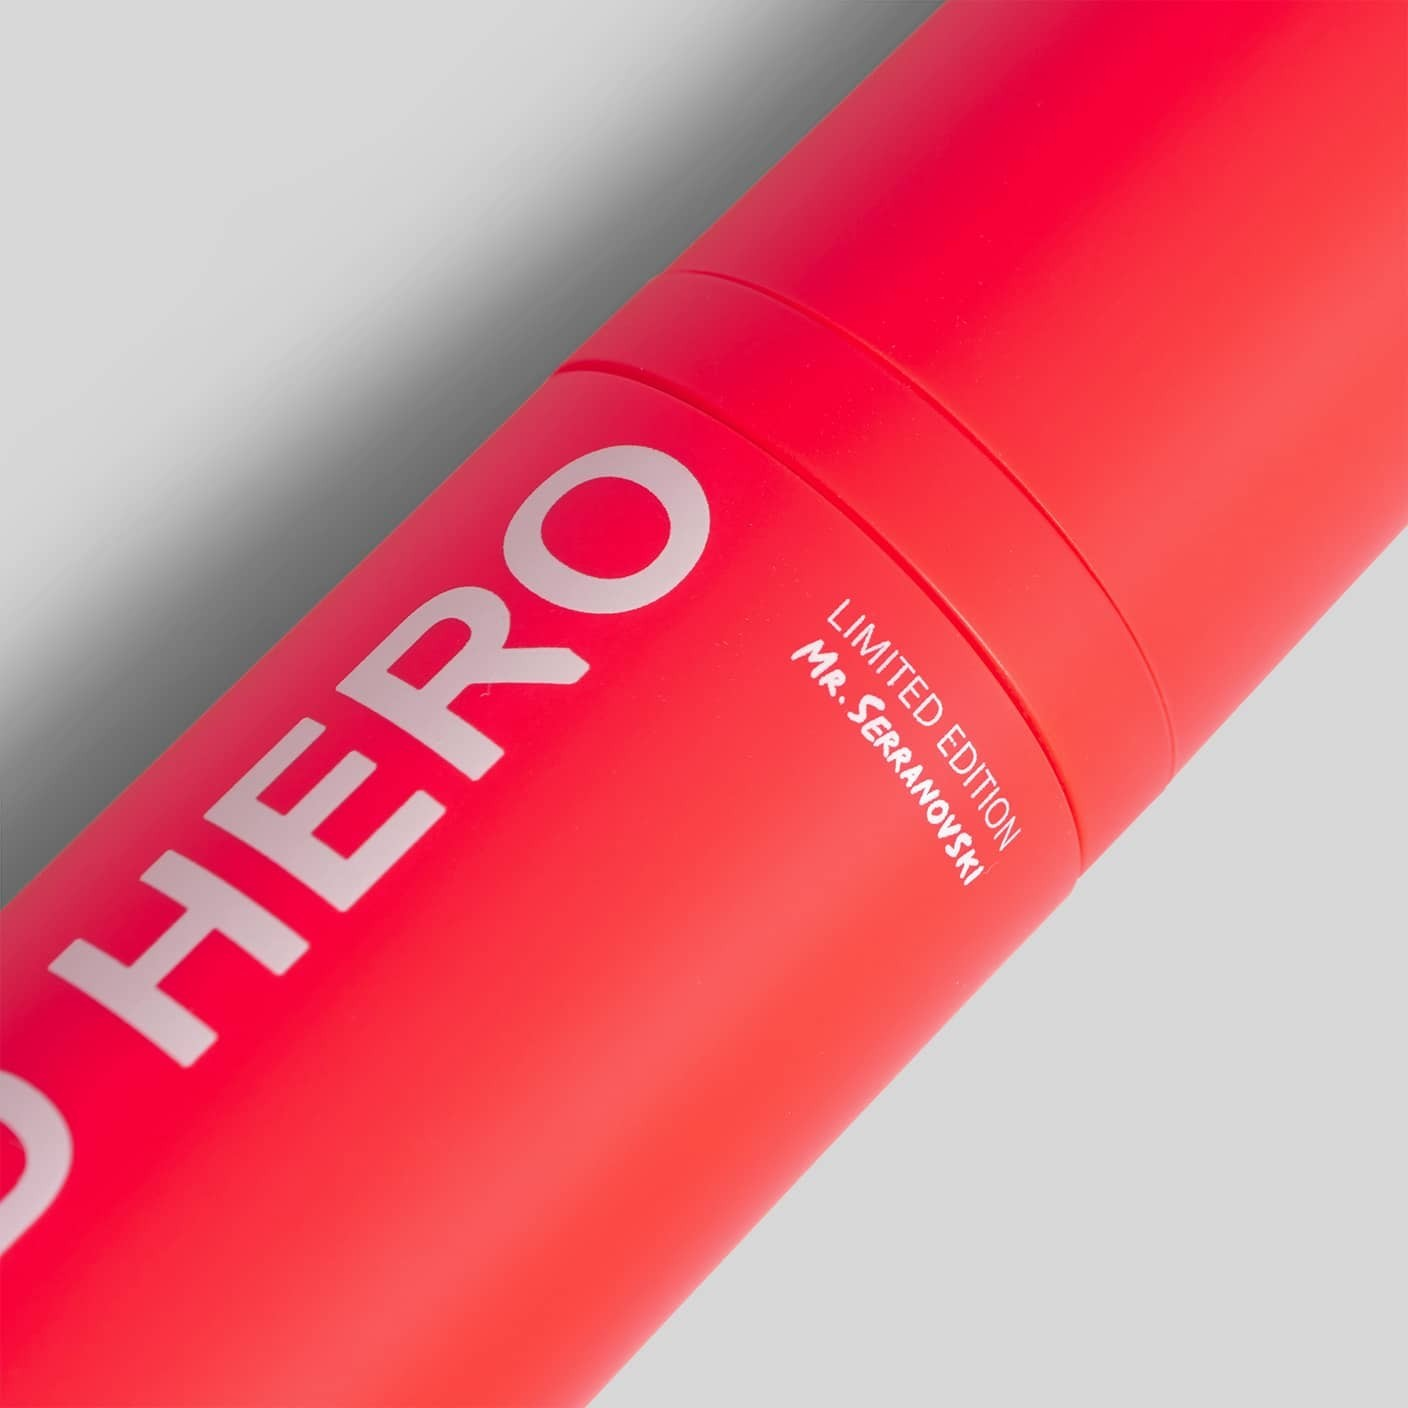 The Beard Hero Limited Edition